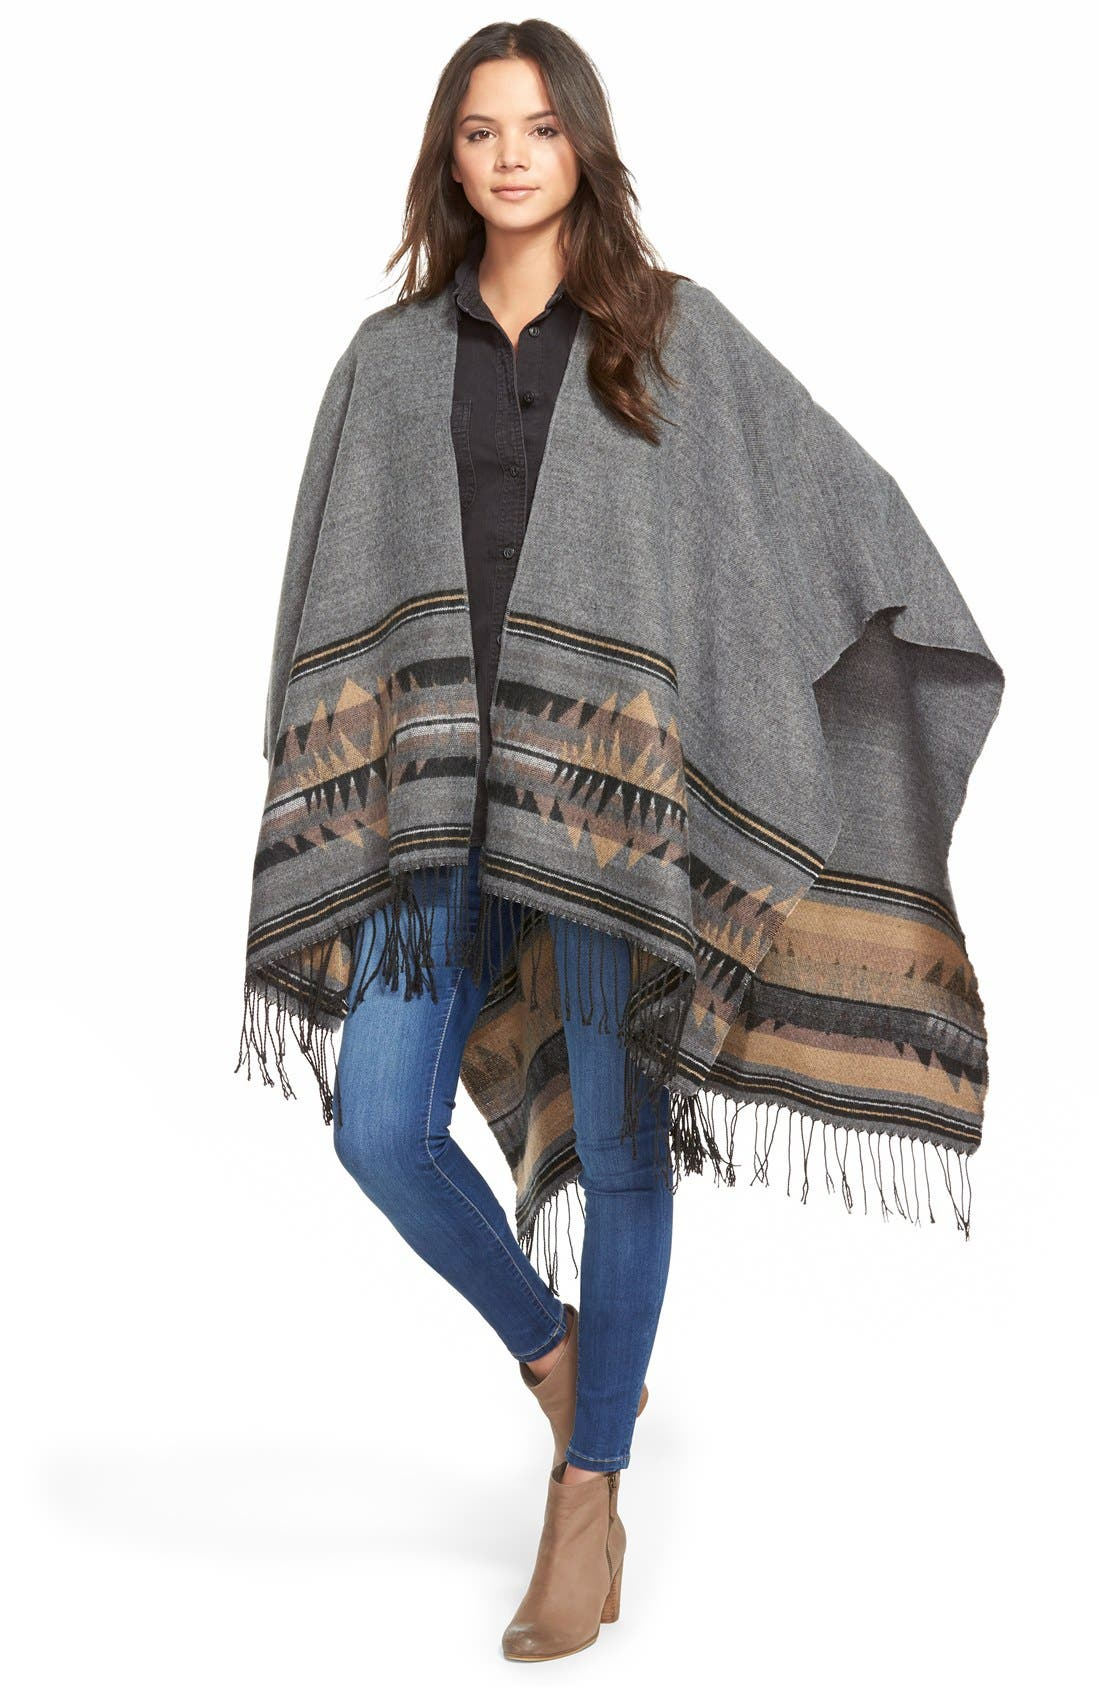 'Wanderlust' Blanket Poncho,                             Main thumbnail 1, color,                             Black/ Grey